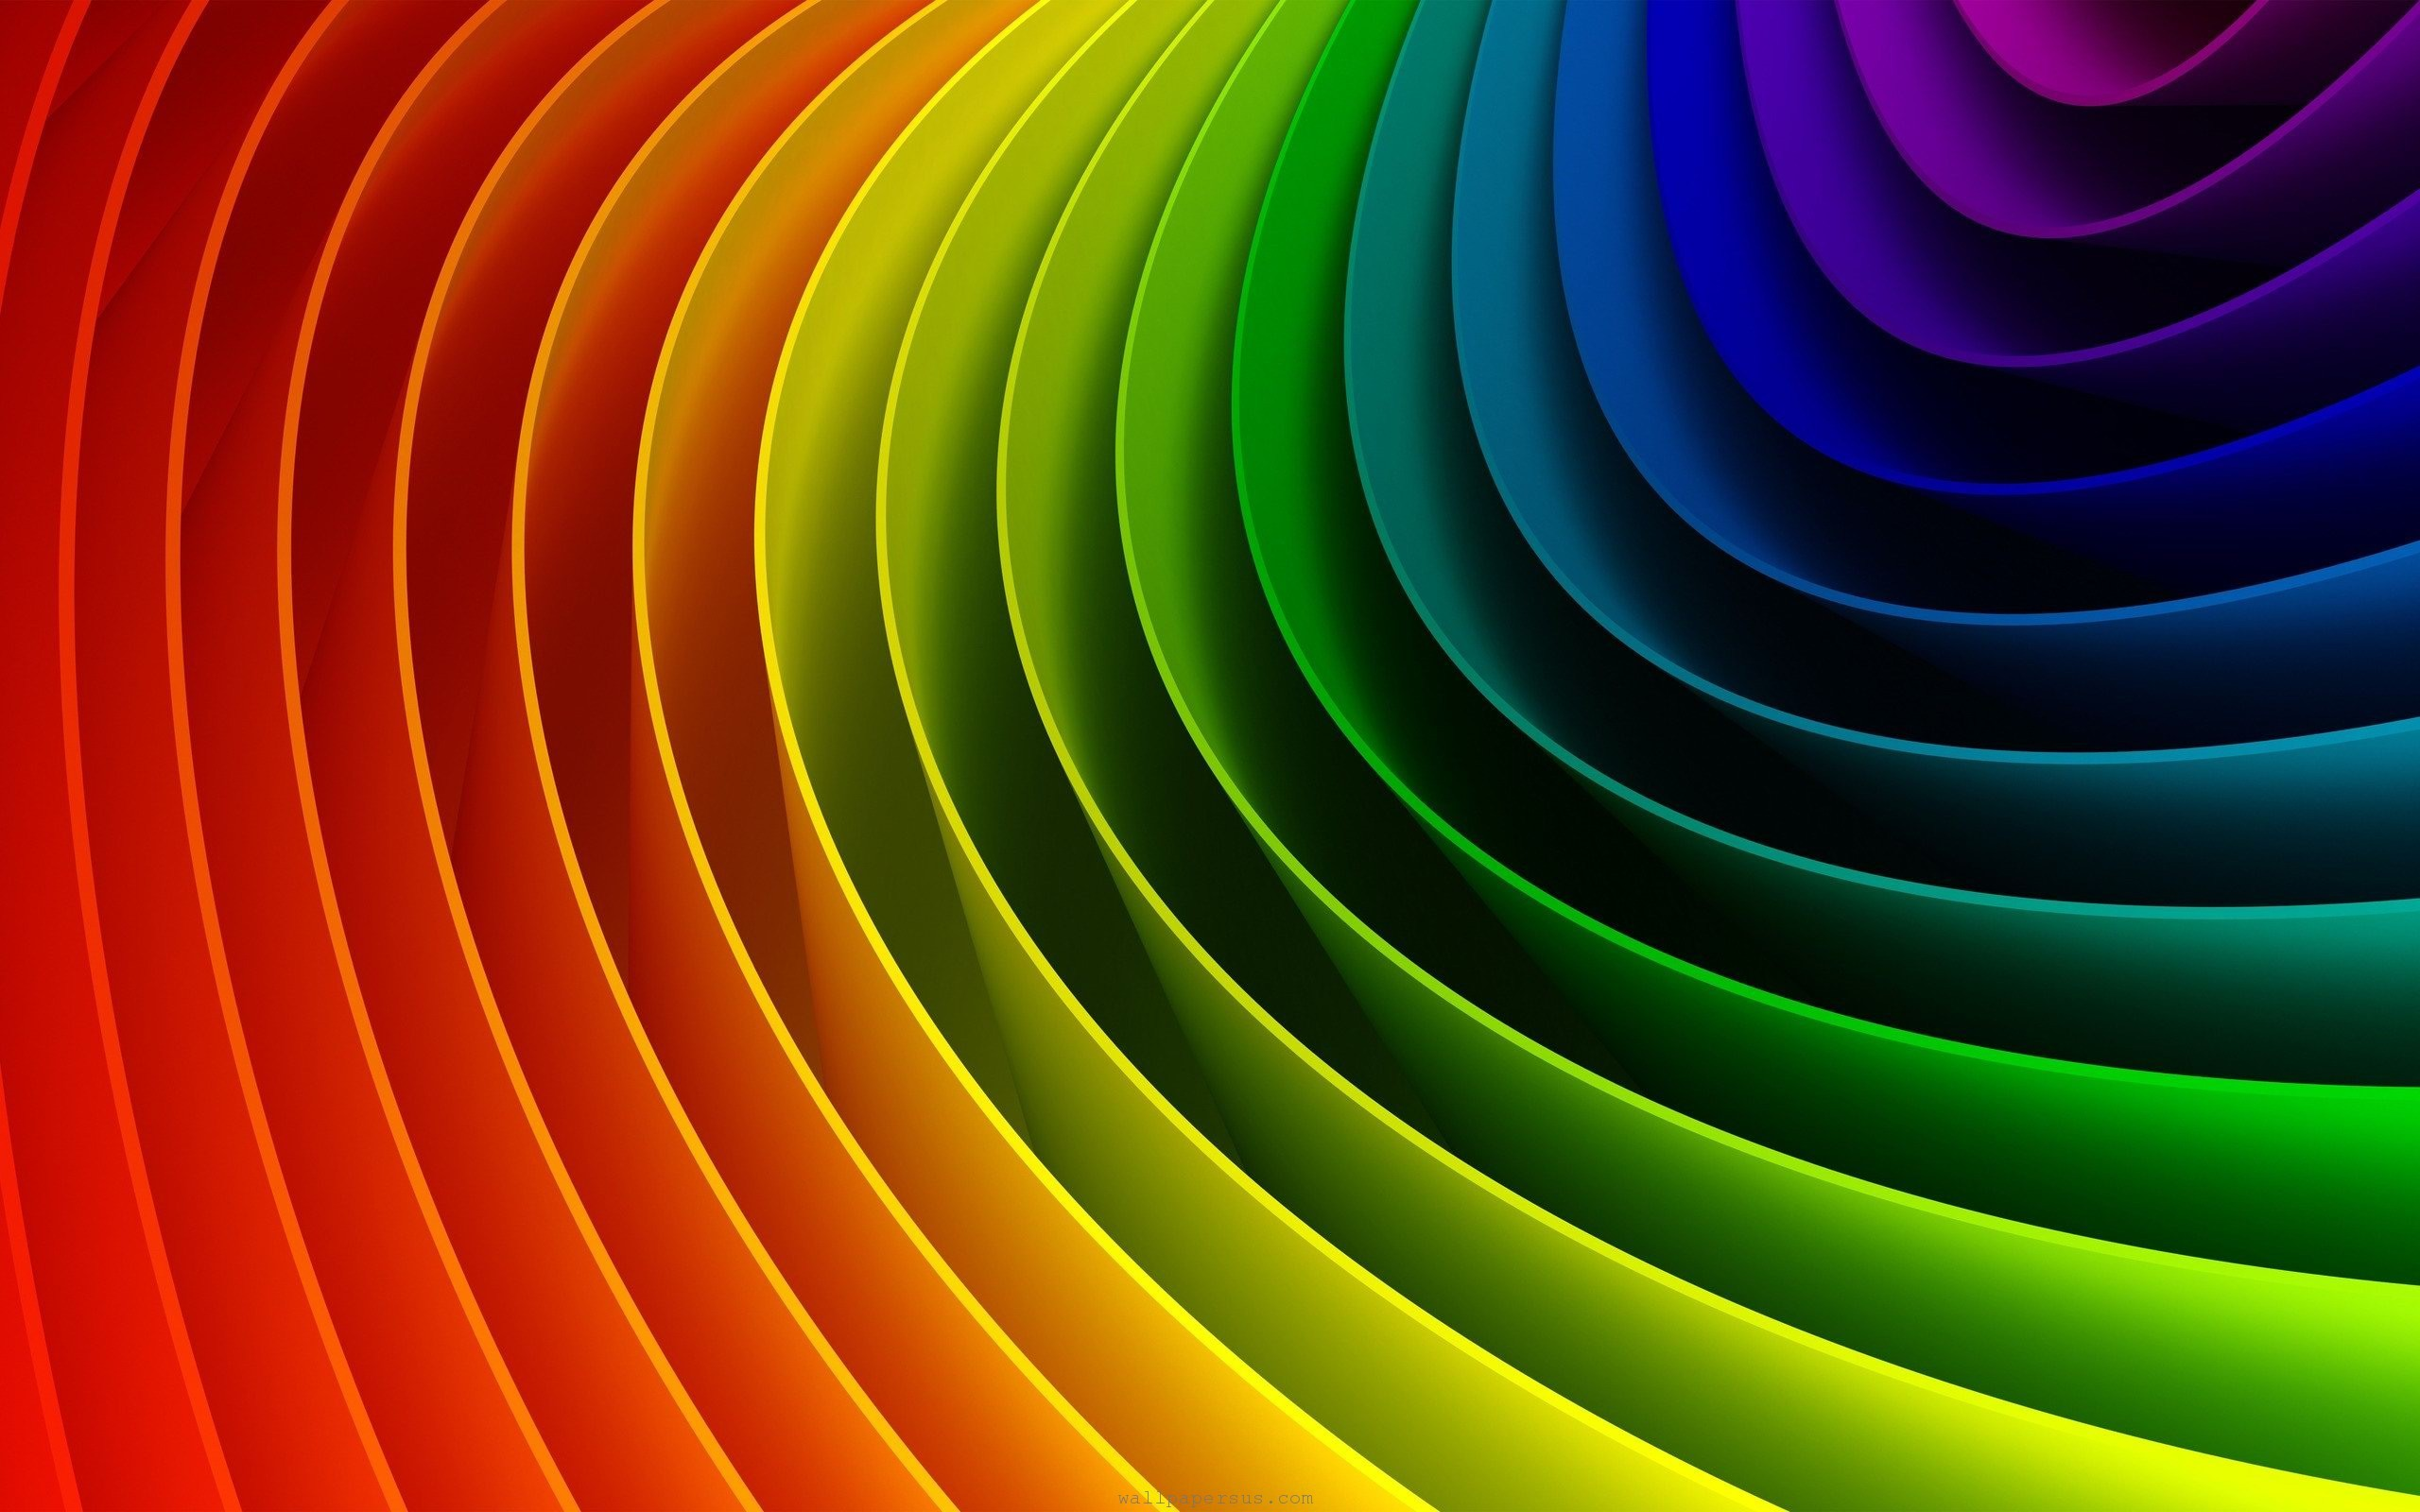 3D-Abstract-Colorful-Background-download-wallpapers.jpg